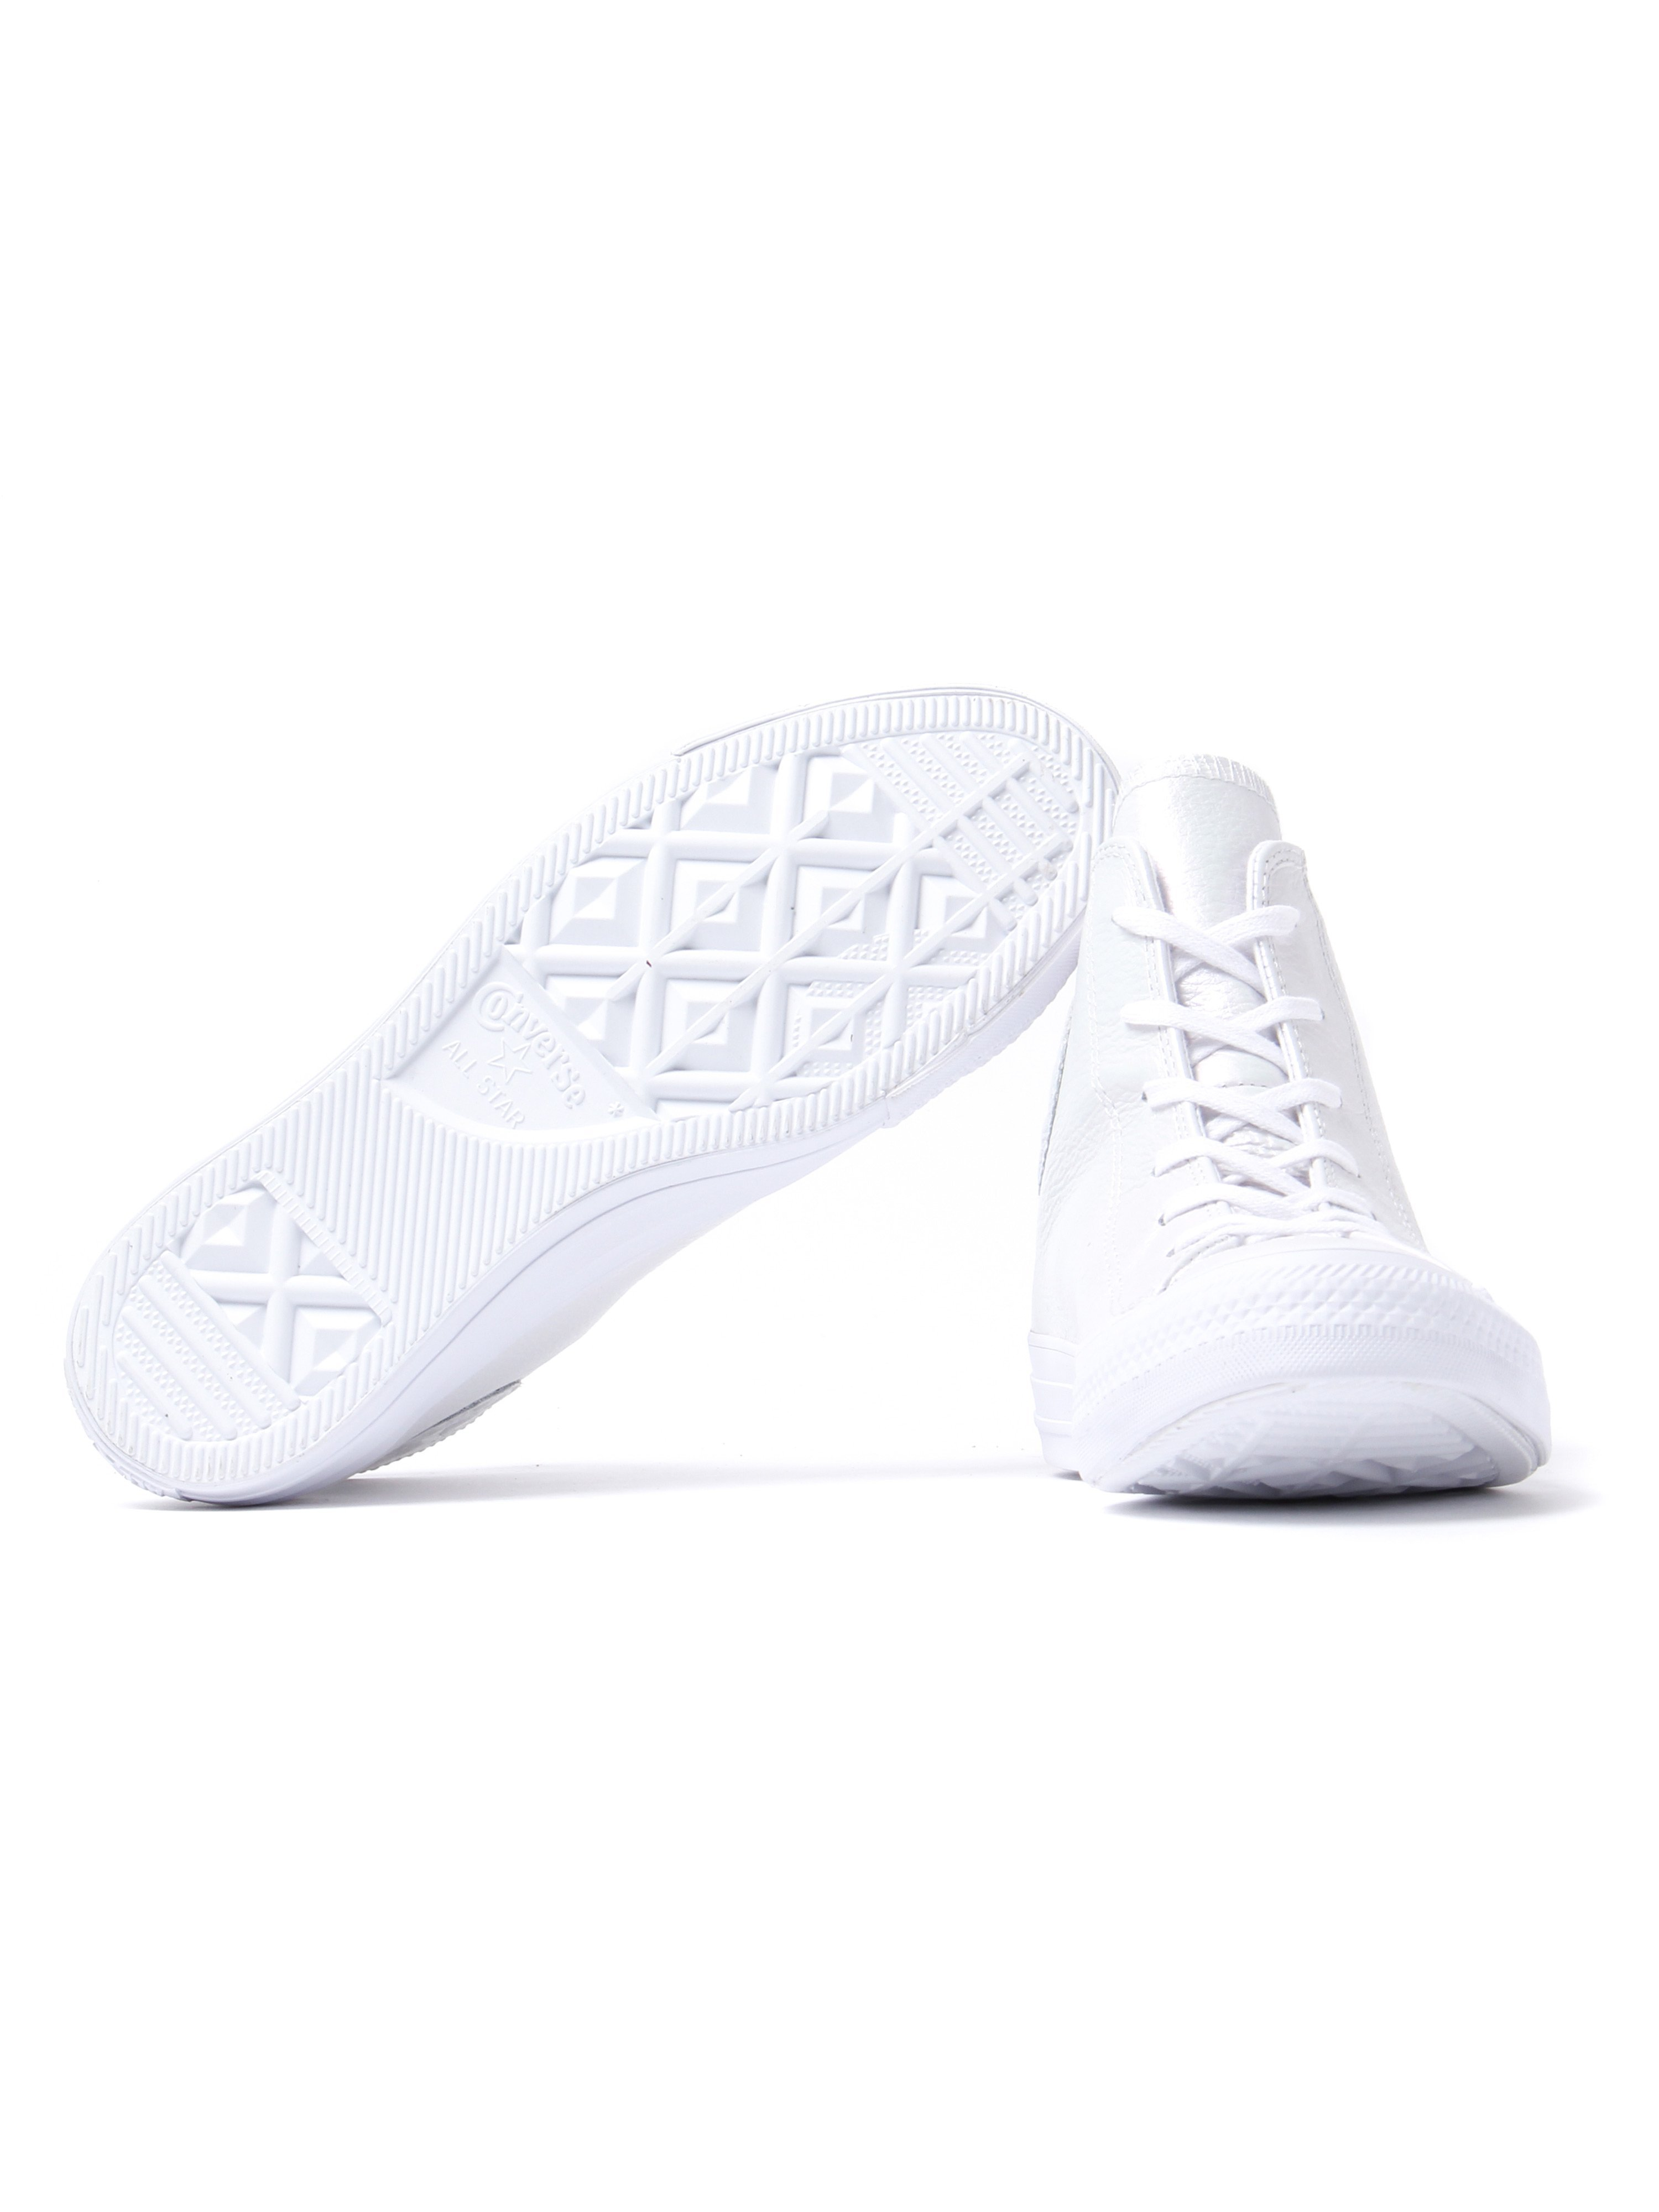 Converse Women's Chuck Taylor All Star HI Trainers - Pearled White